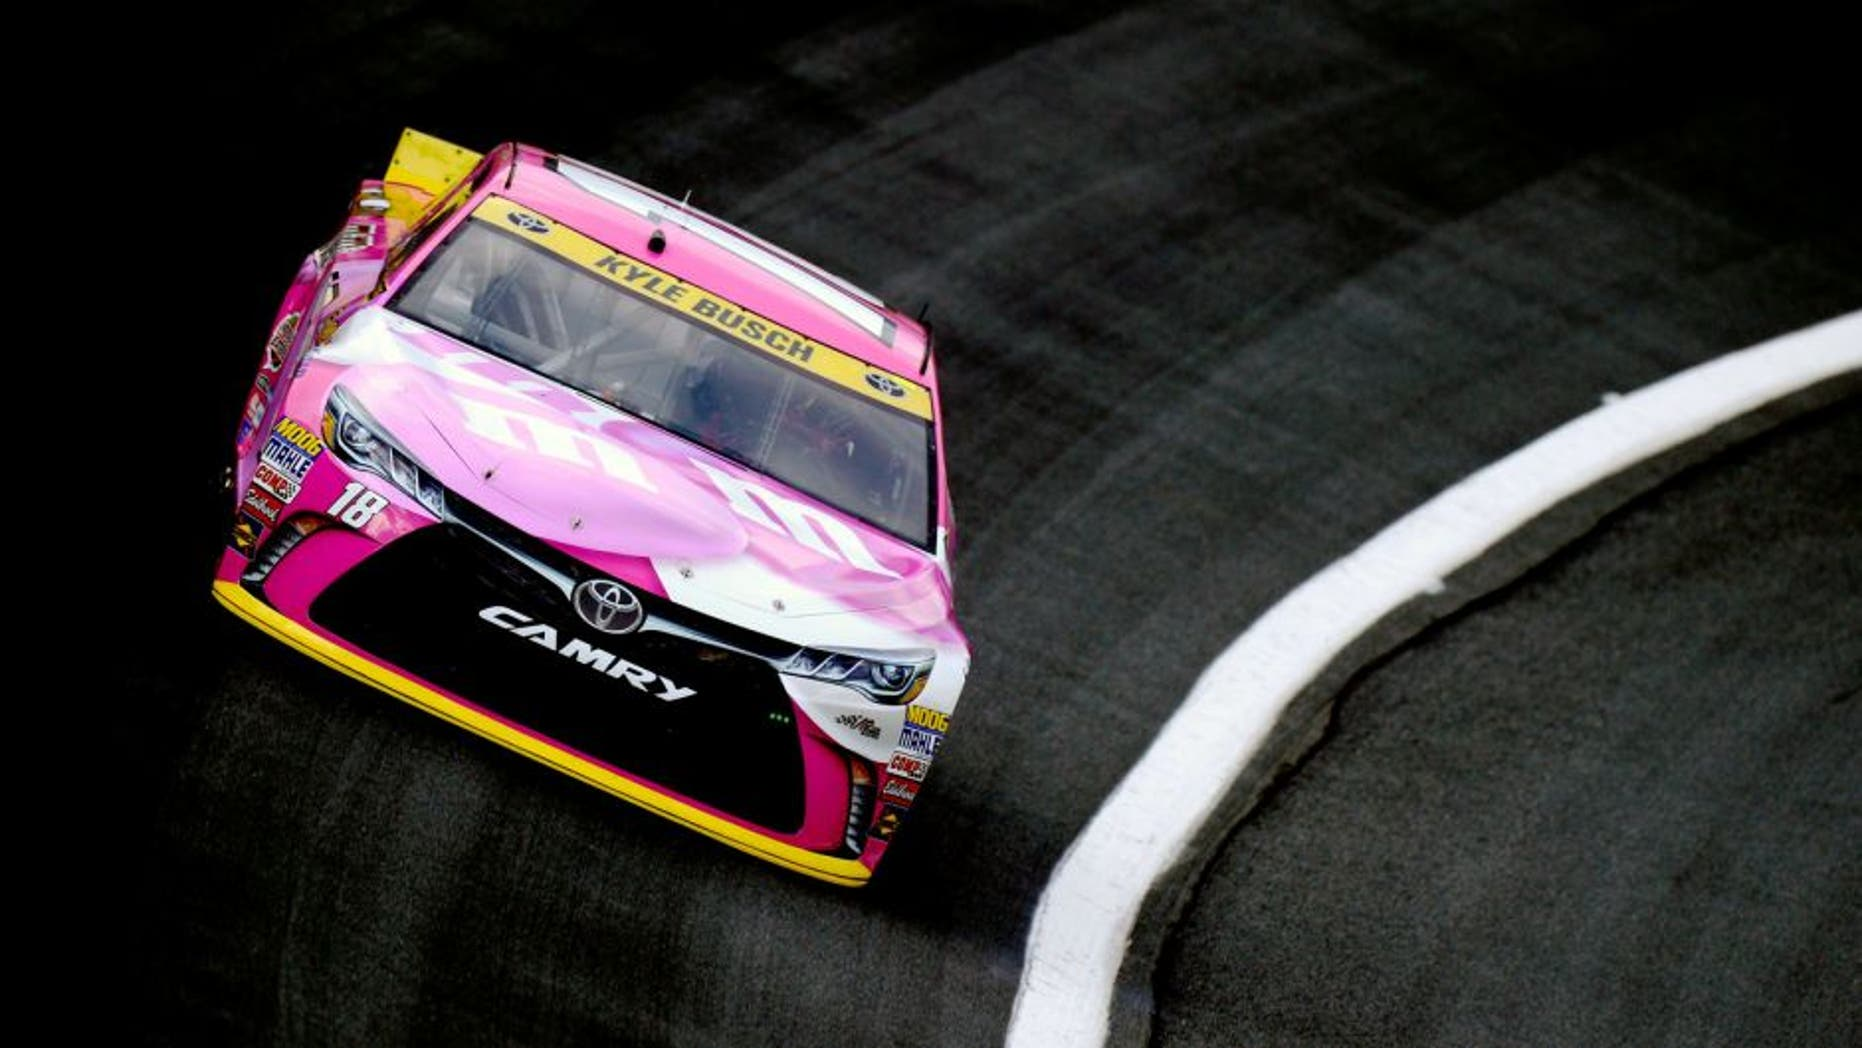 CHARLOTTE, NC - OCTOBER 08: Kyle Busch, driver of the #18 M&M's Pretty In Pink Foundation Toyota, during practice for the NASCAR Sprint Cup Series Bank of America 500 at Charlotte Motor Speedway on October 8, 2015 in Charlotte, North Carolina. (Photo by Robert Laberge/Getty Images)